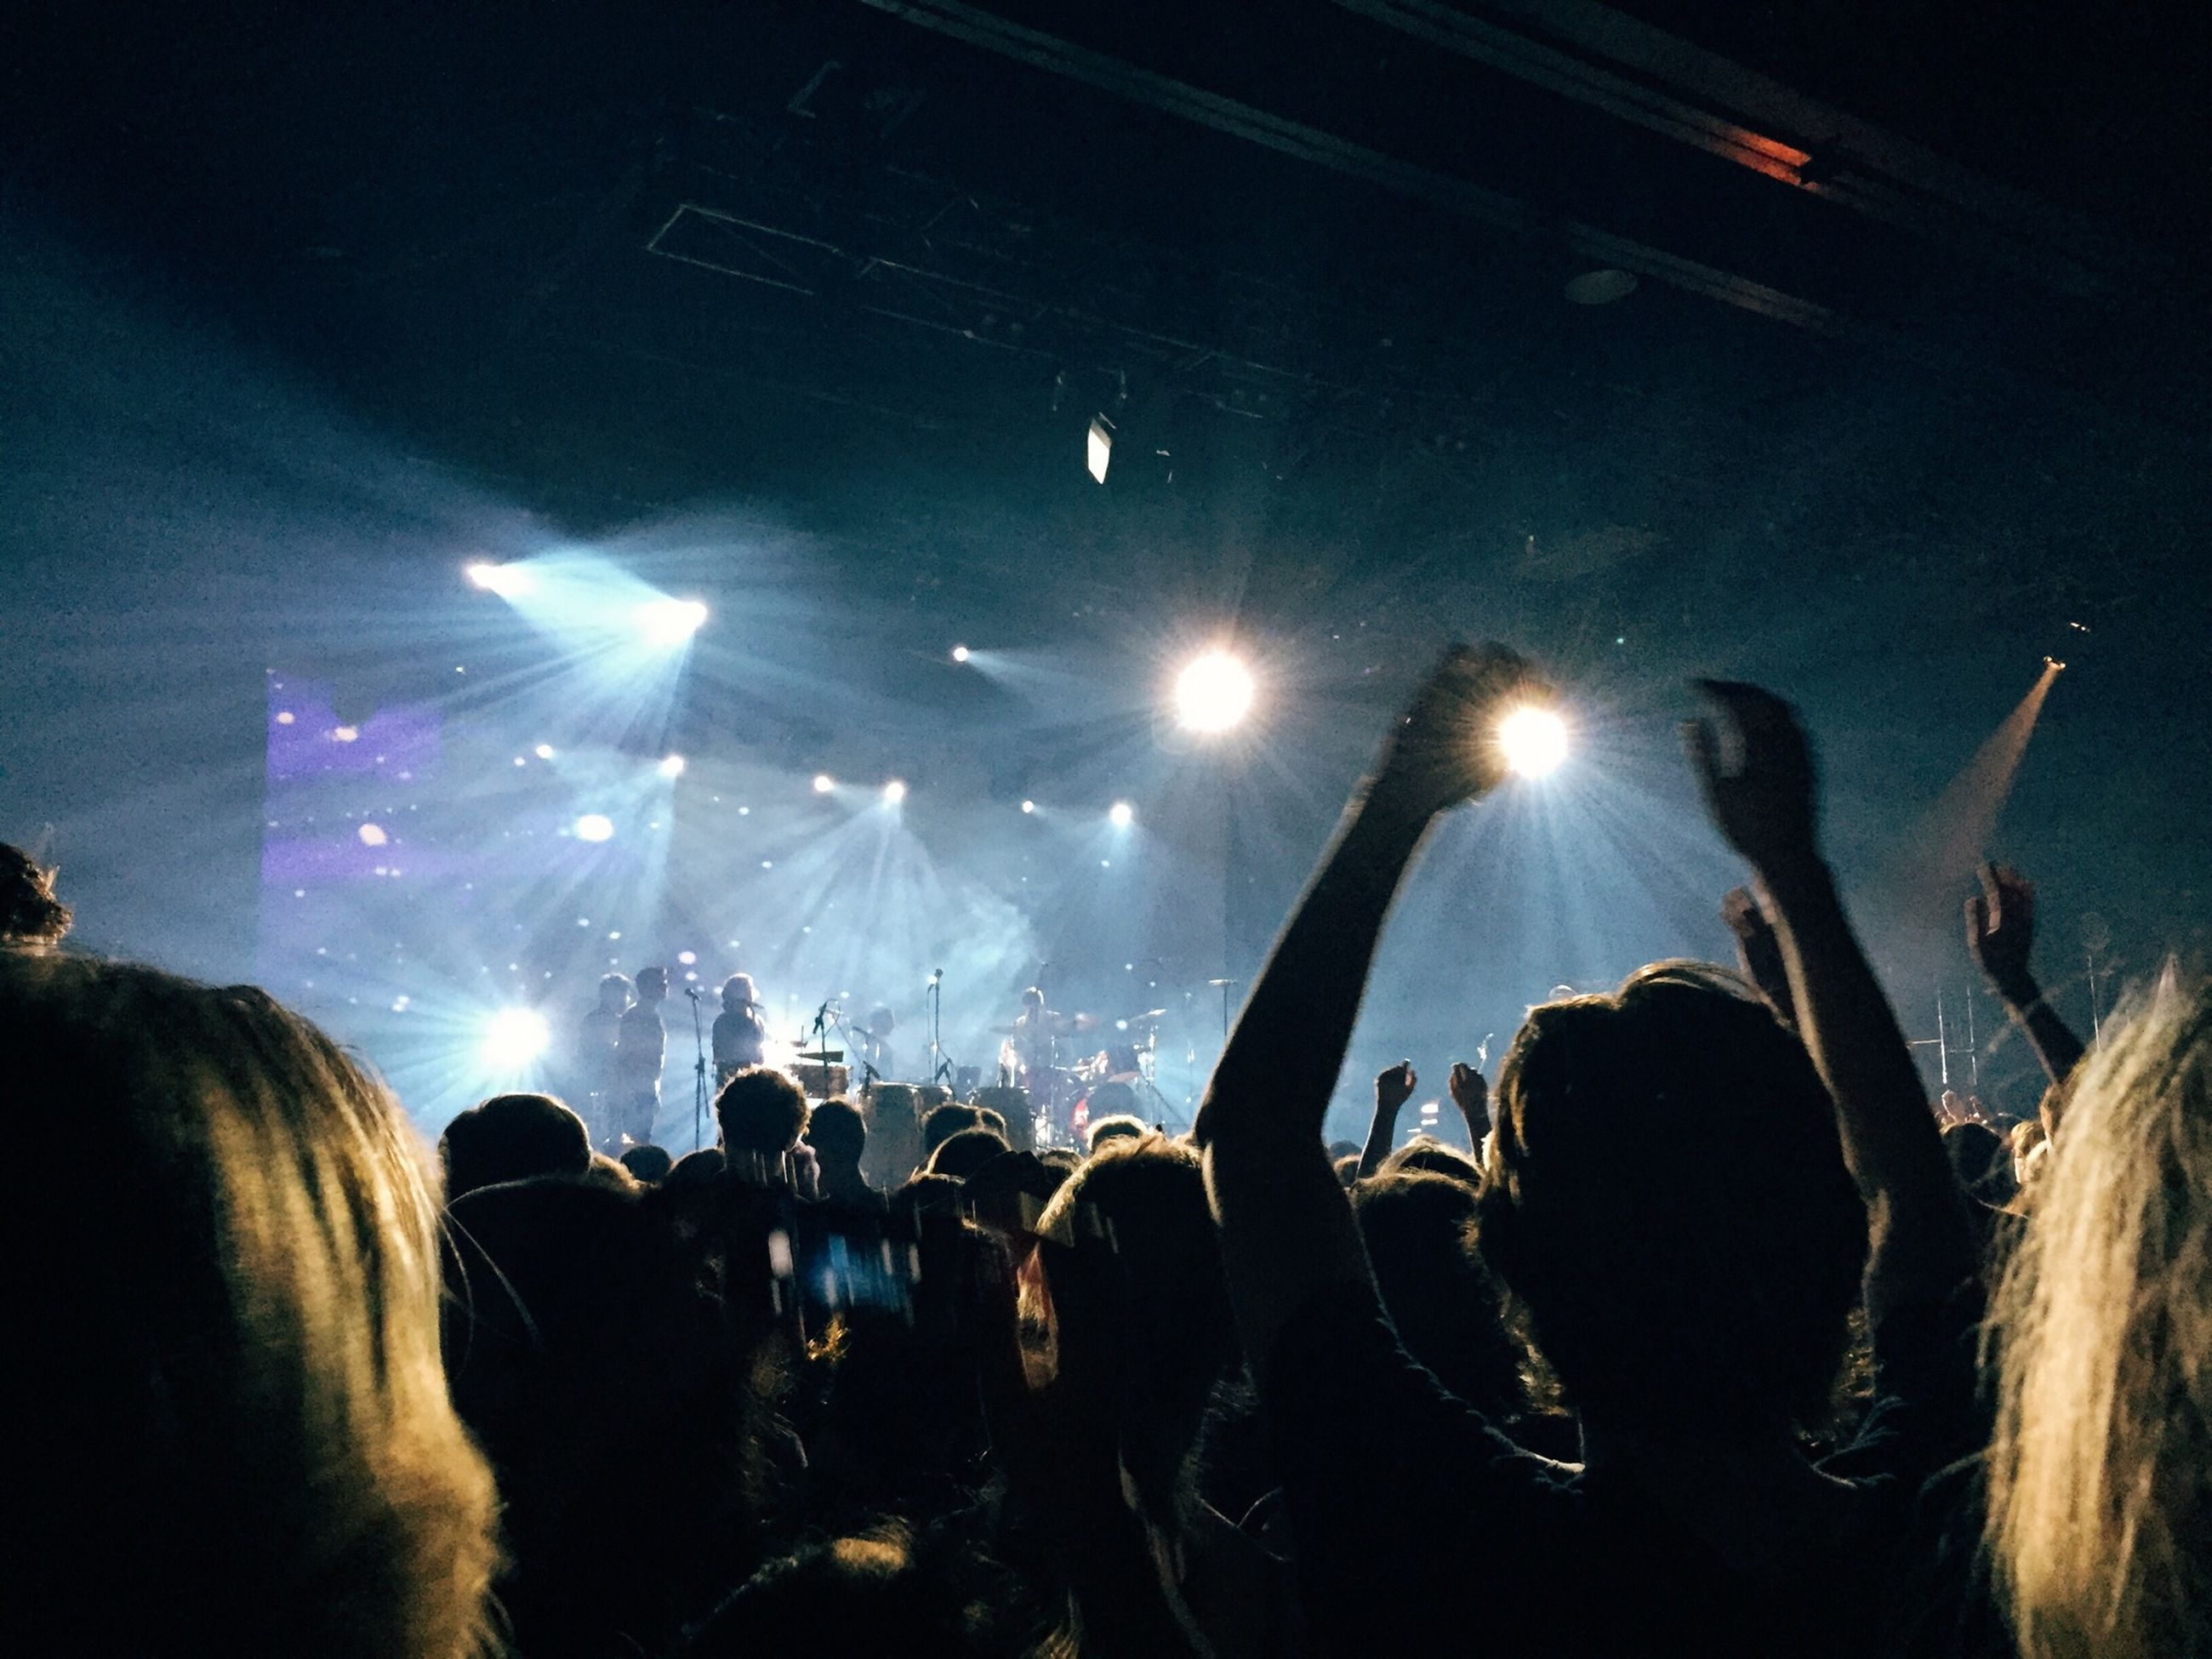 large group of people, arts culture and entertainment, music, crowd, lifestyles, nightlife, enjoyment, person, men, illuminated, leisure activity, performance, stage - performance space, event, fun, youth culture, concert, music festival, popular music concert